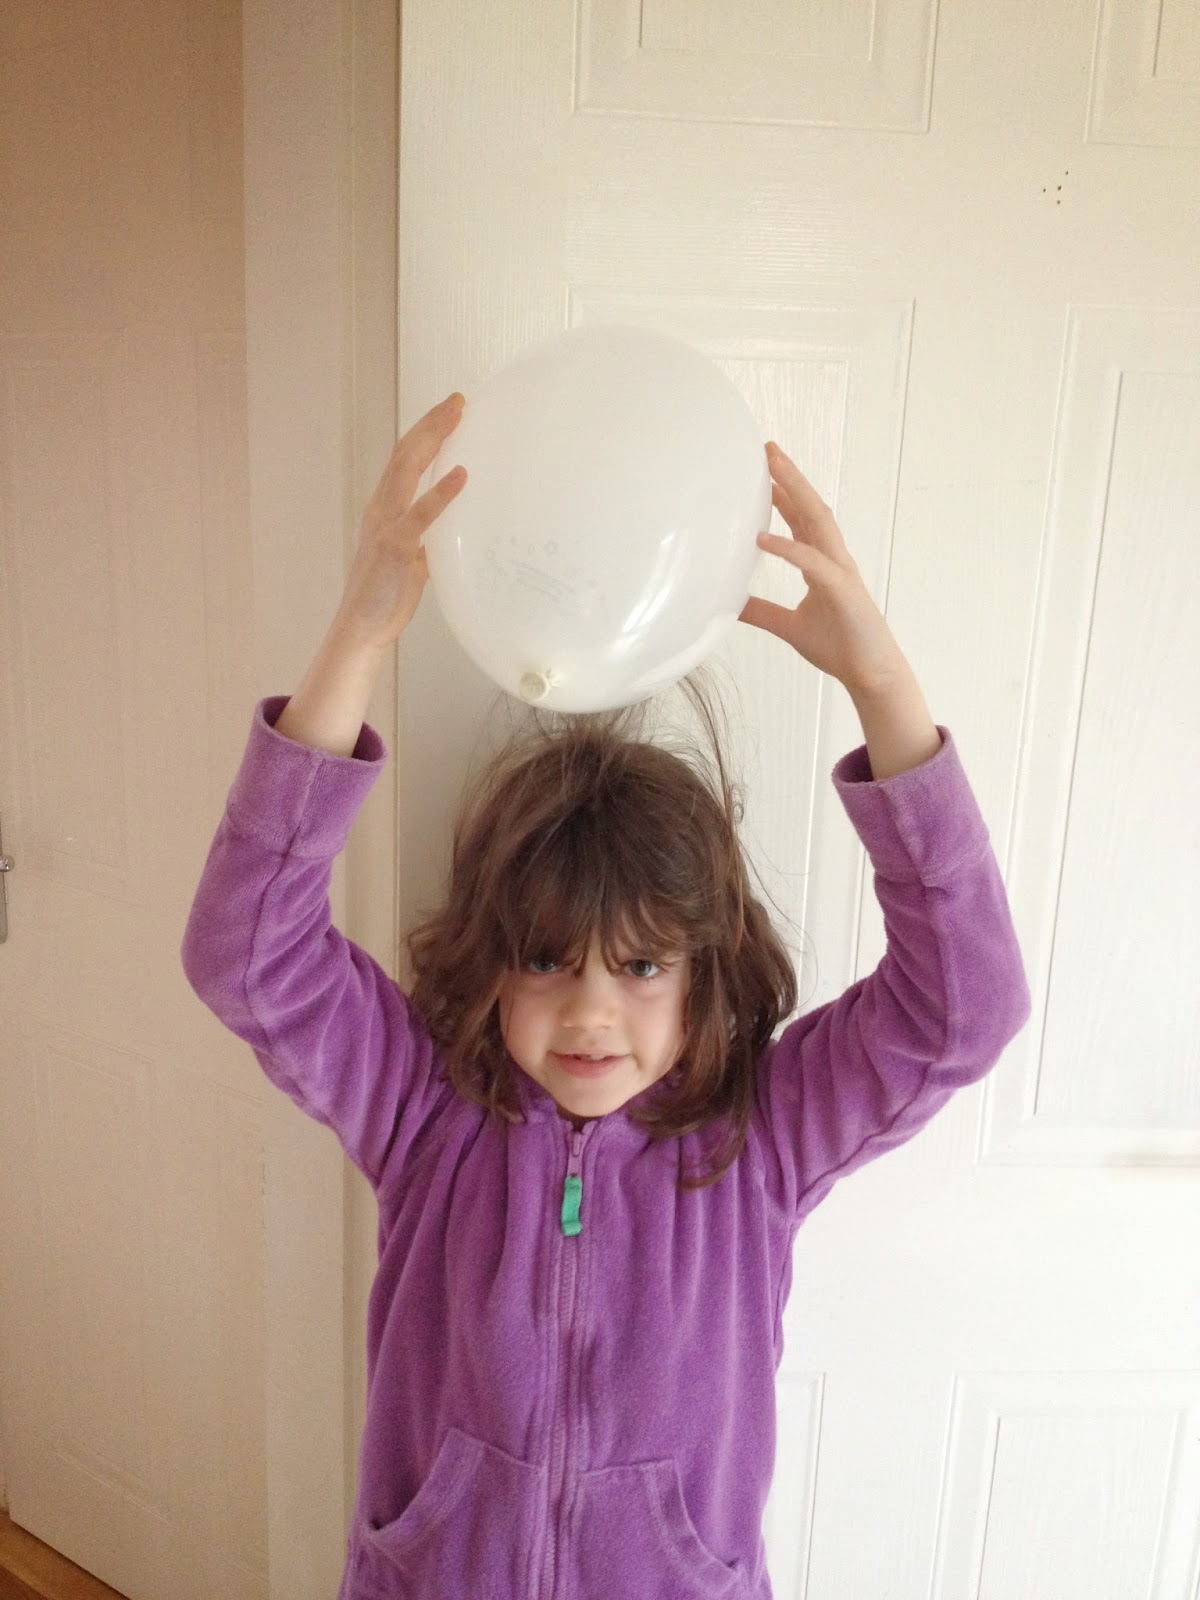 image linked from Emma's Science Blog: Emma does an experiment with static electricity, April 2014